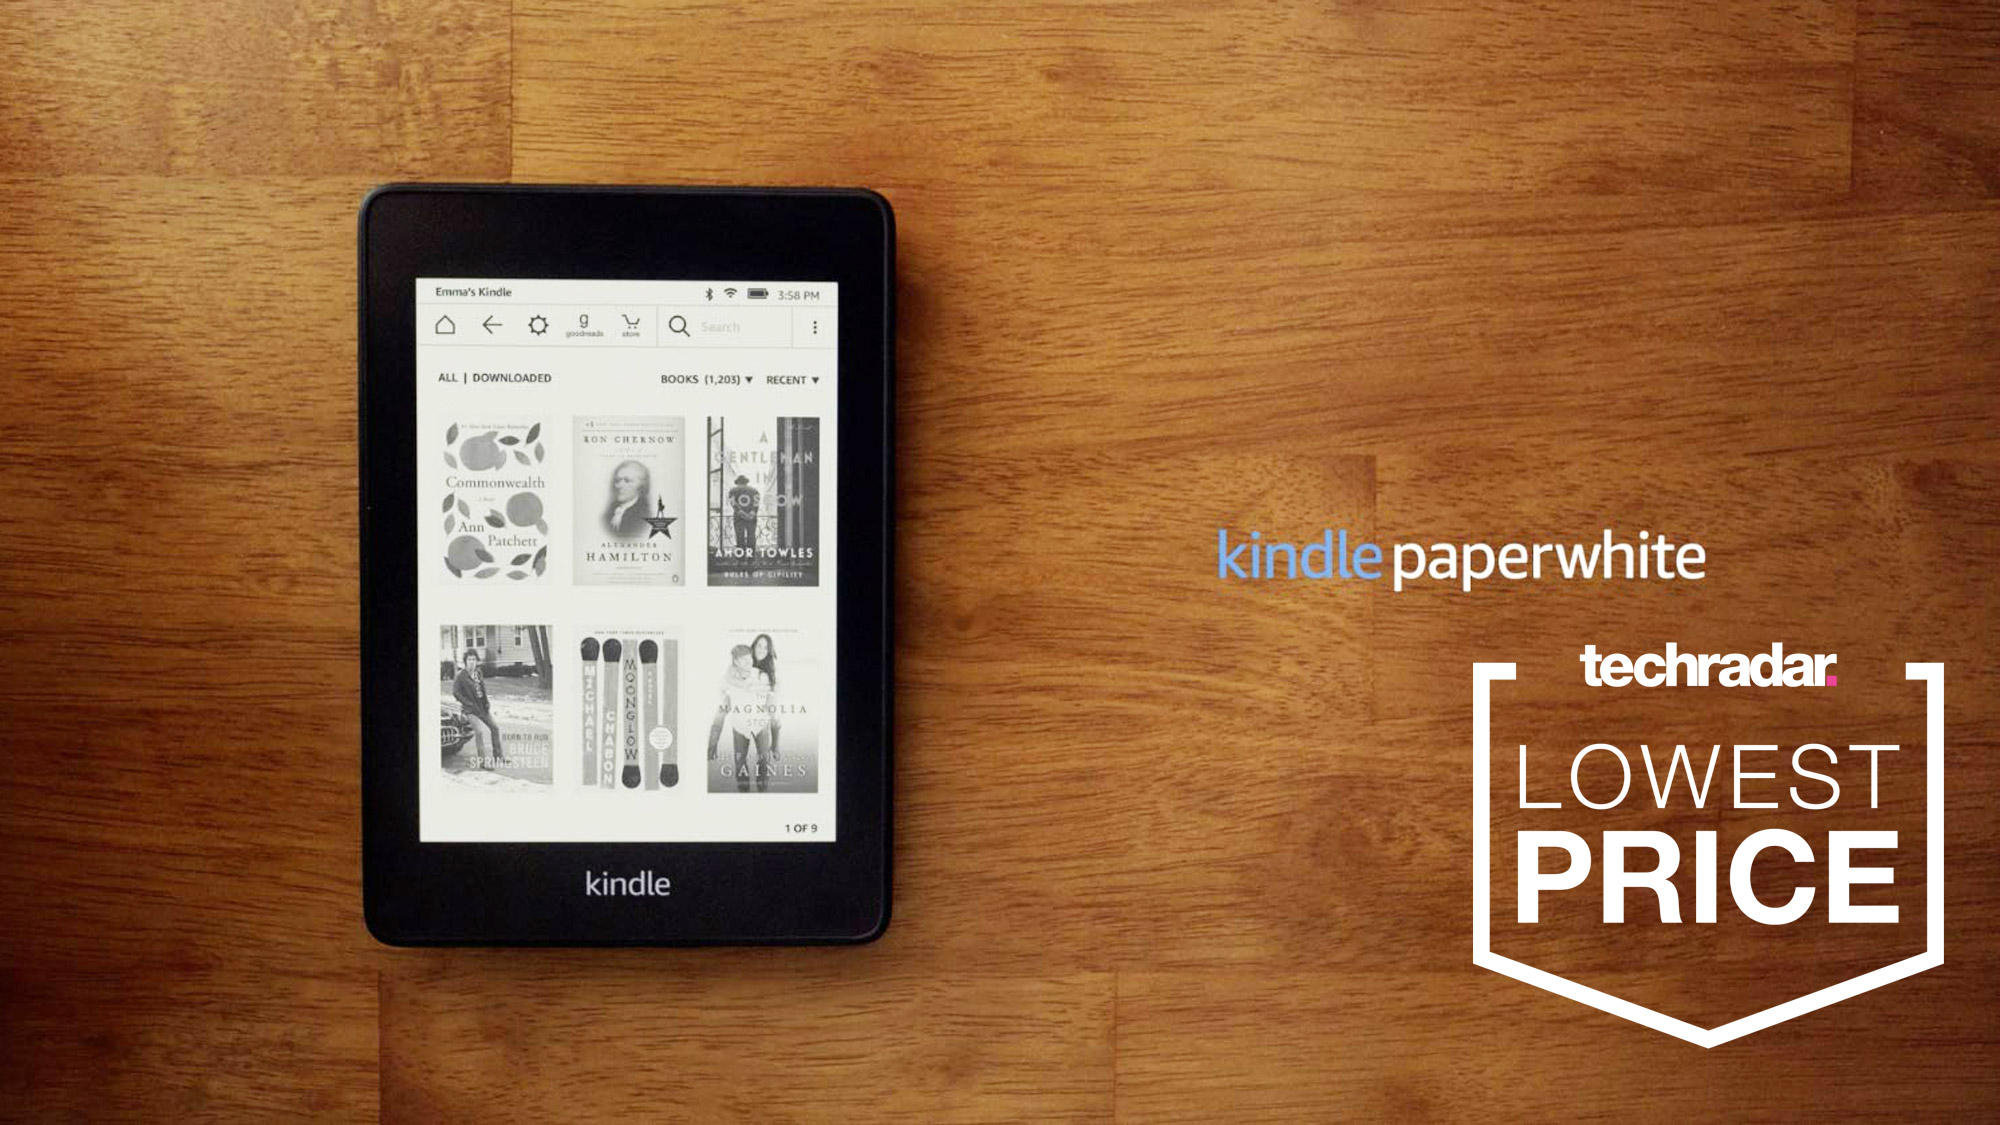 The Kindle Paperwhite is down to its lowest price ever at Amazon